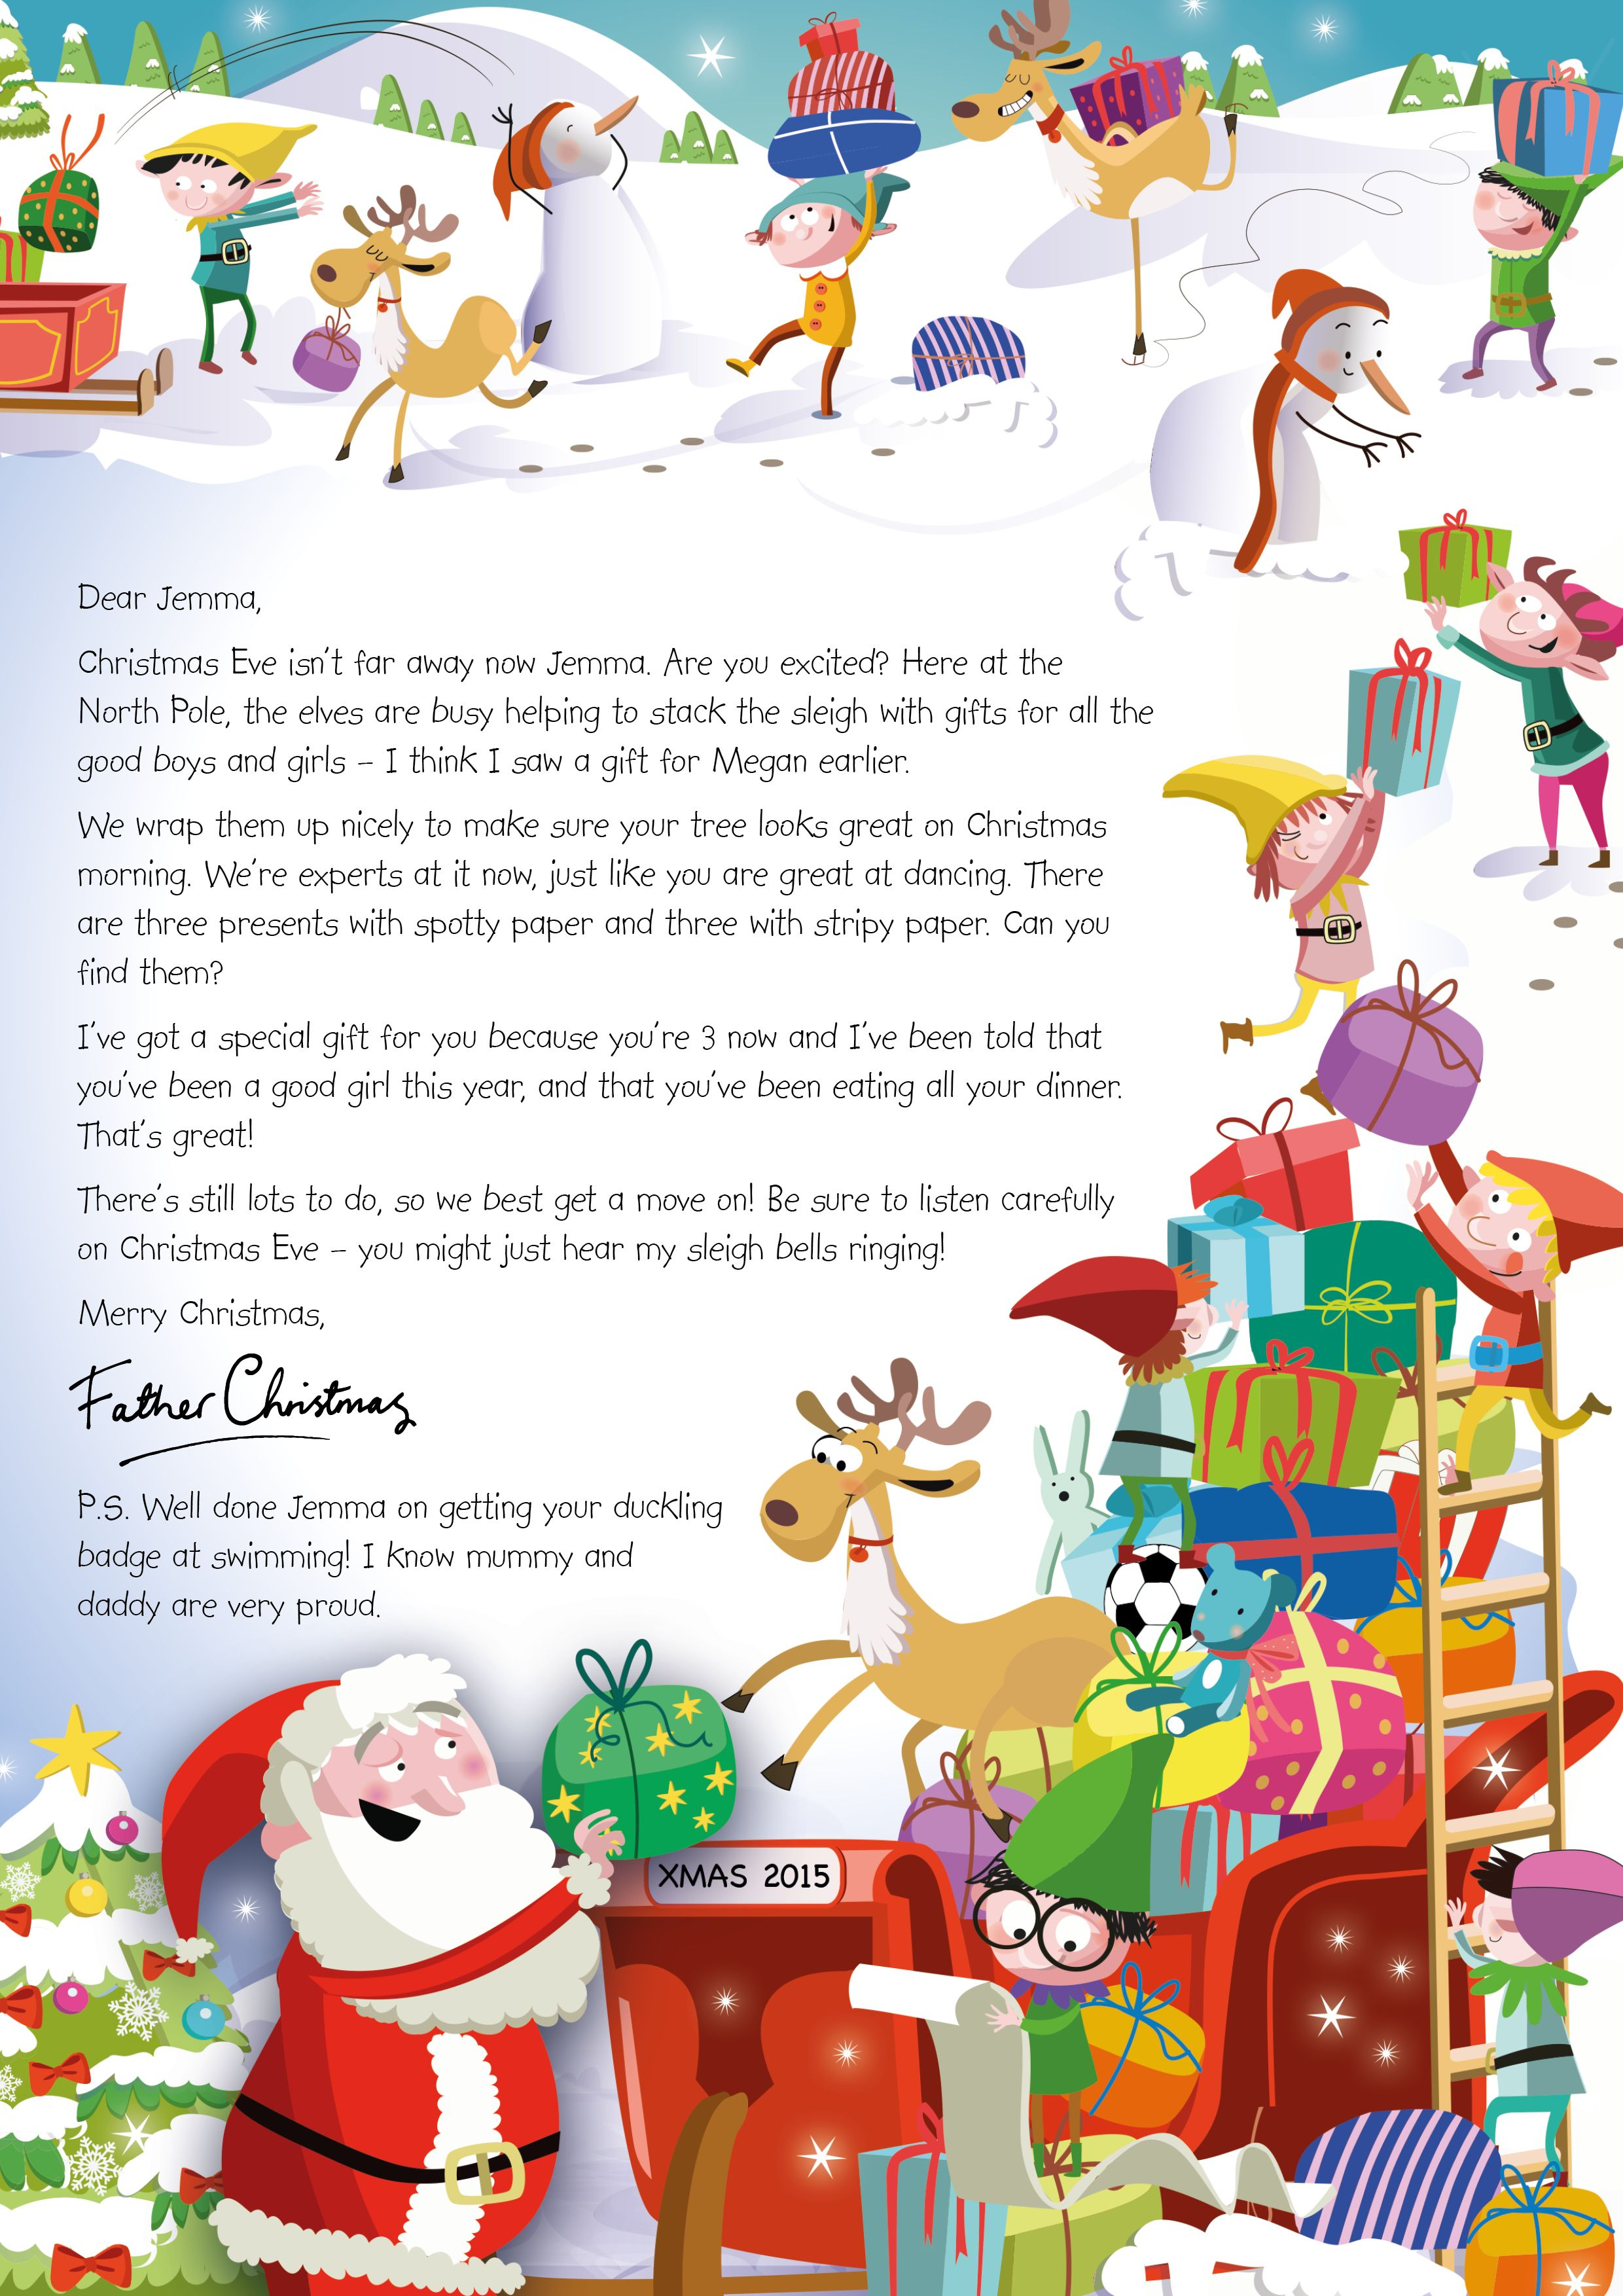 Nspcc Letter From Santa Loading Sleigh 2015 Https Www Nspcc